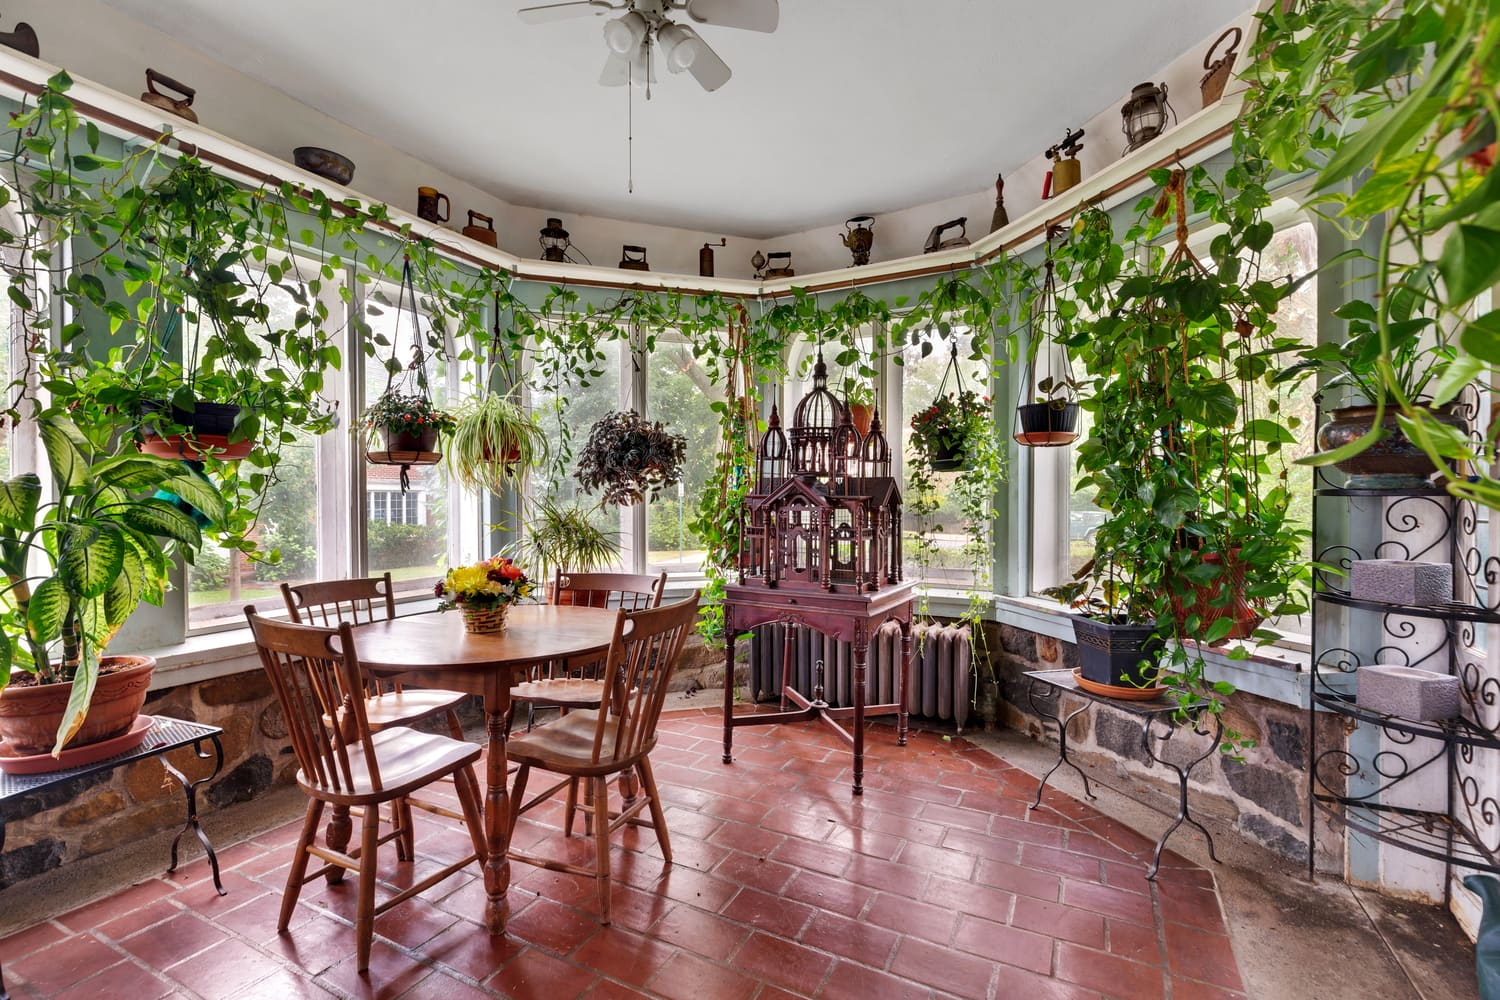 Look Inside: This Three-Story $2.8M Storybook Home in Queens Is Straight Out of a Fairytale